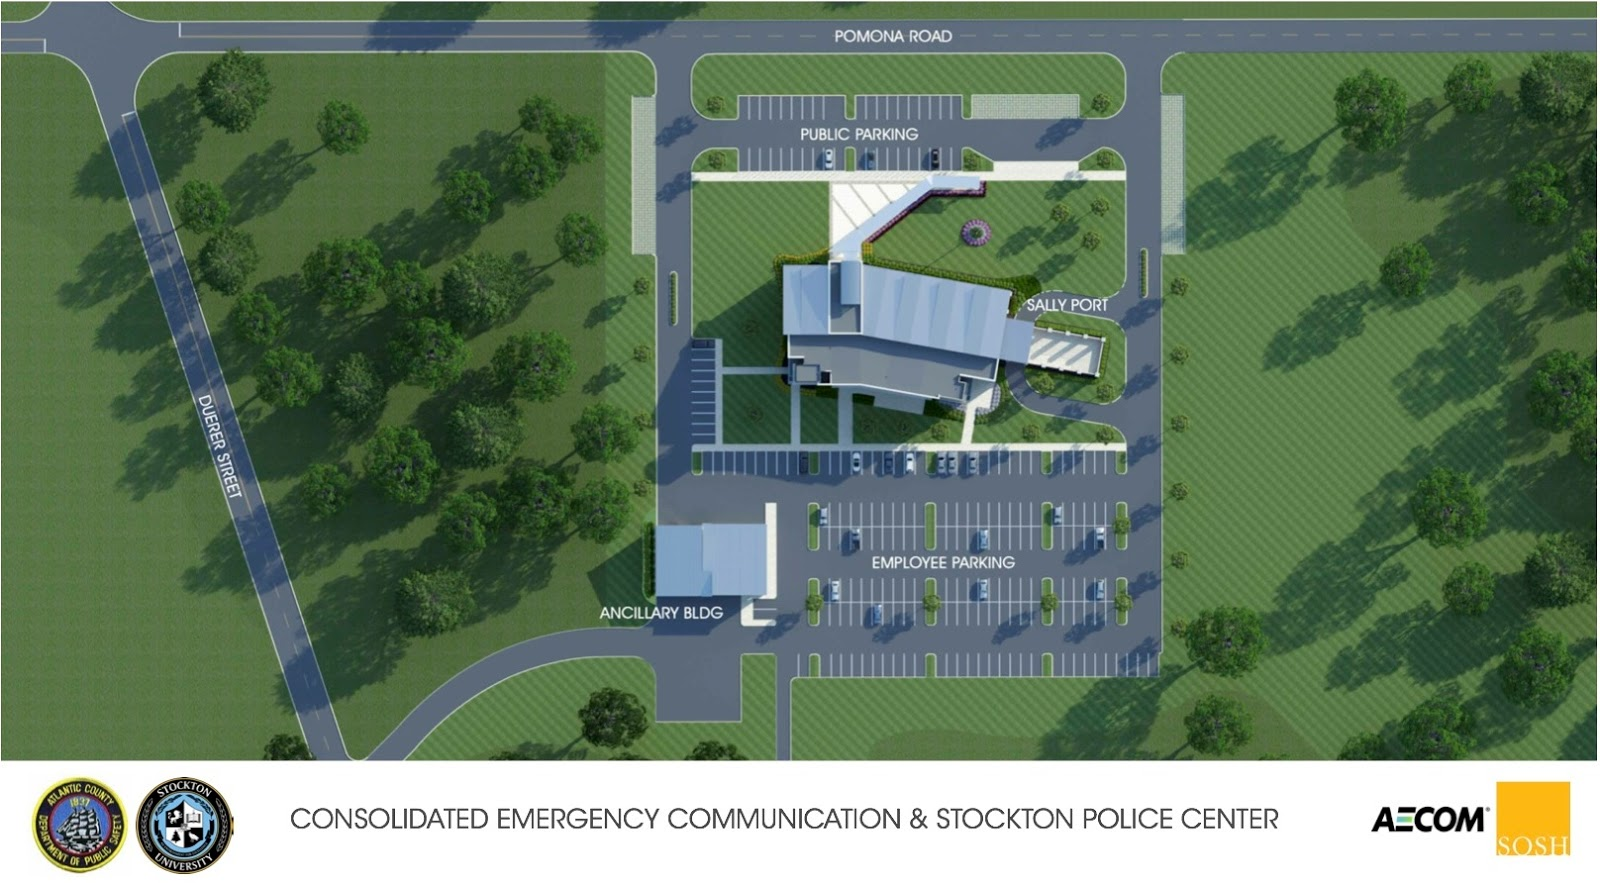 Atlantic county stockton university plan 31 million dollar atlantic county and stockton university have entered into an estimated 31 million dollar contract for a countywide dispatch center and stockton police thecheapjerseys Image collections